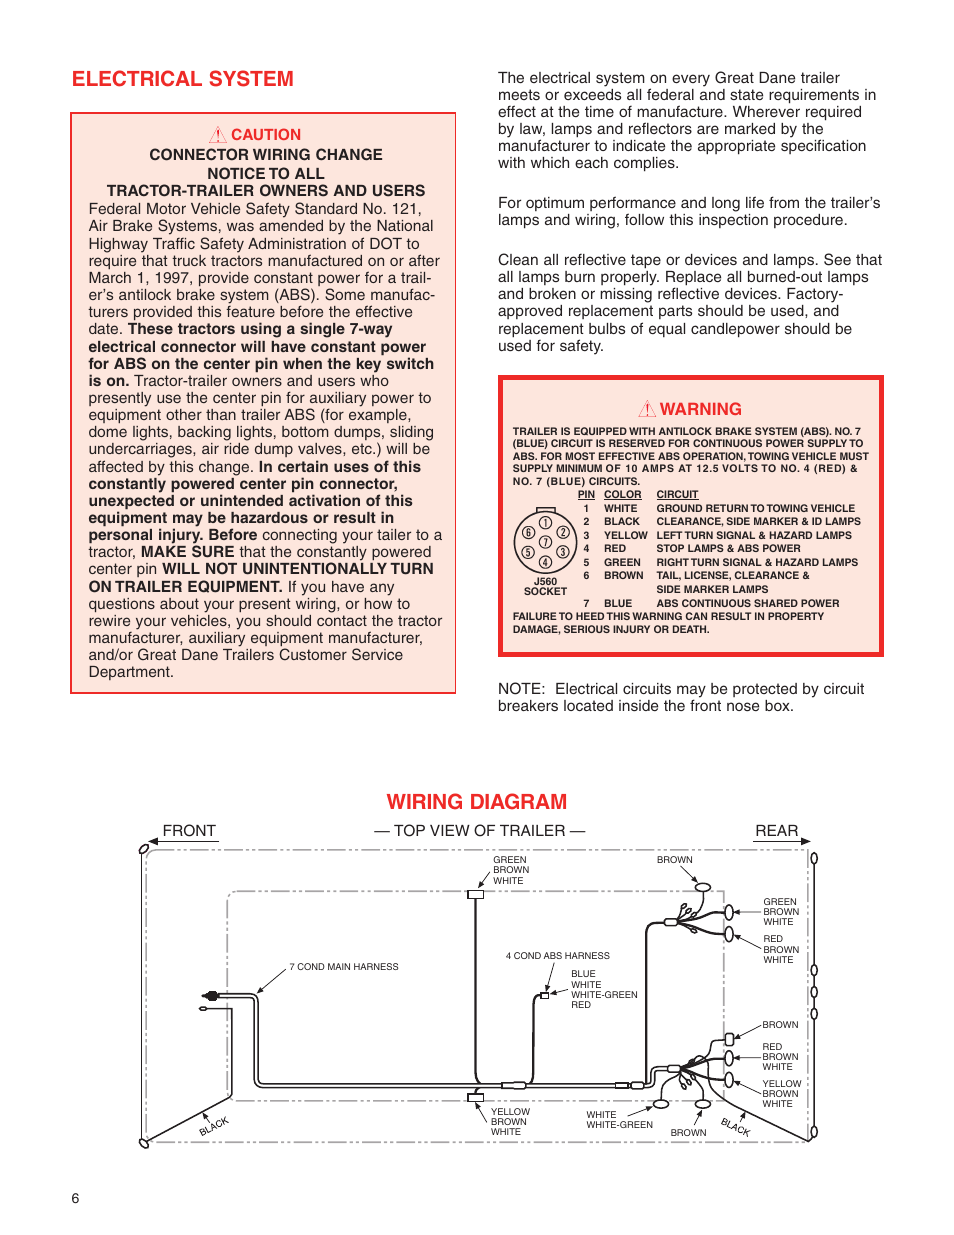 medium resolution of electrical system wiring diagram warning great dane 42101401 user manual page 8 32